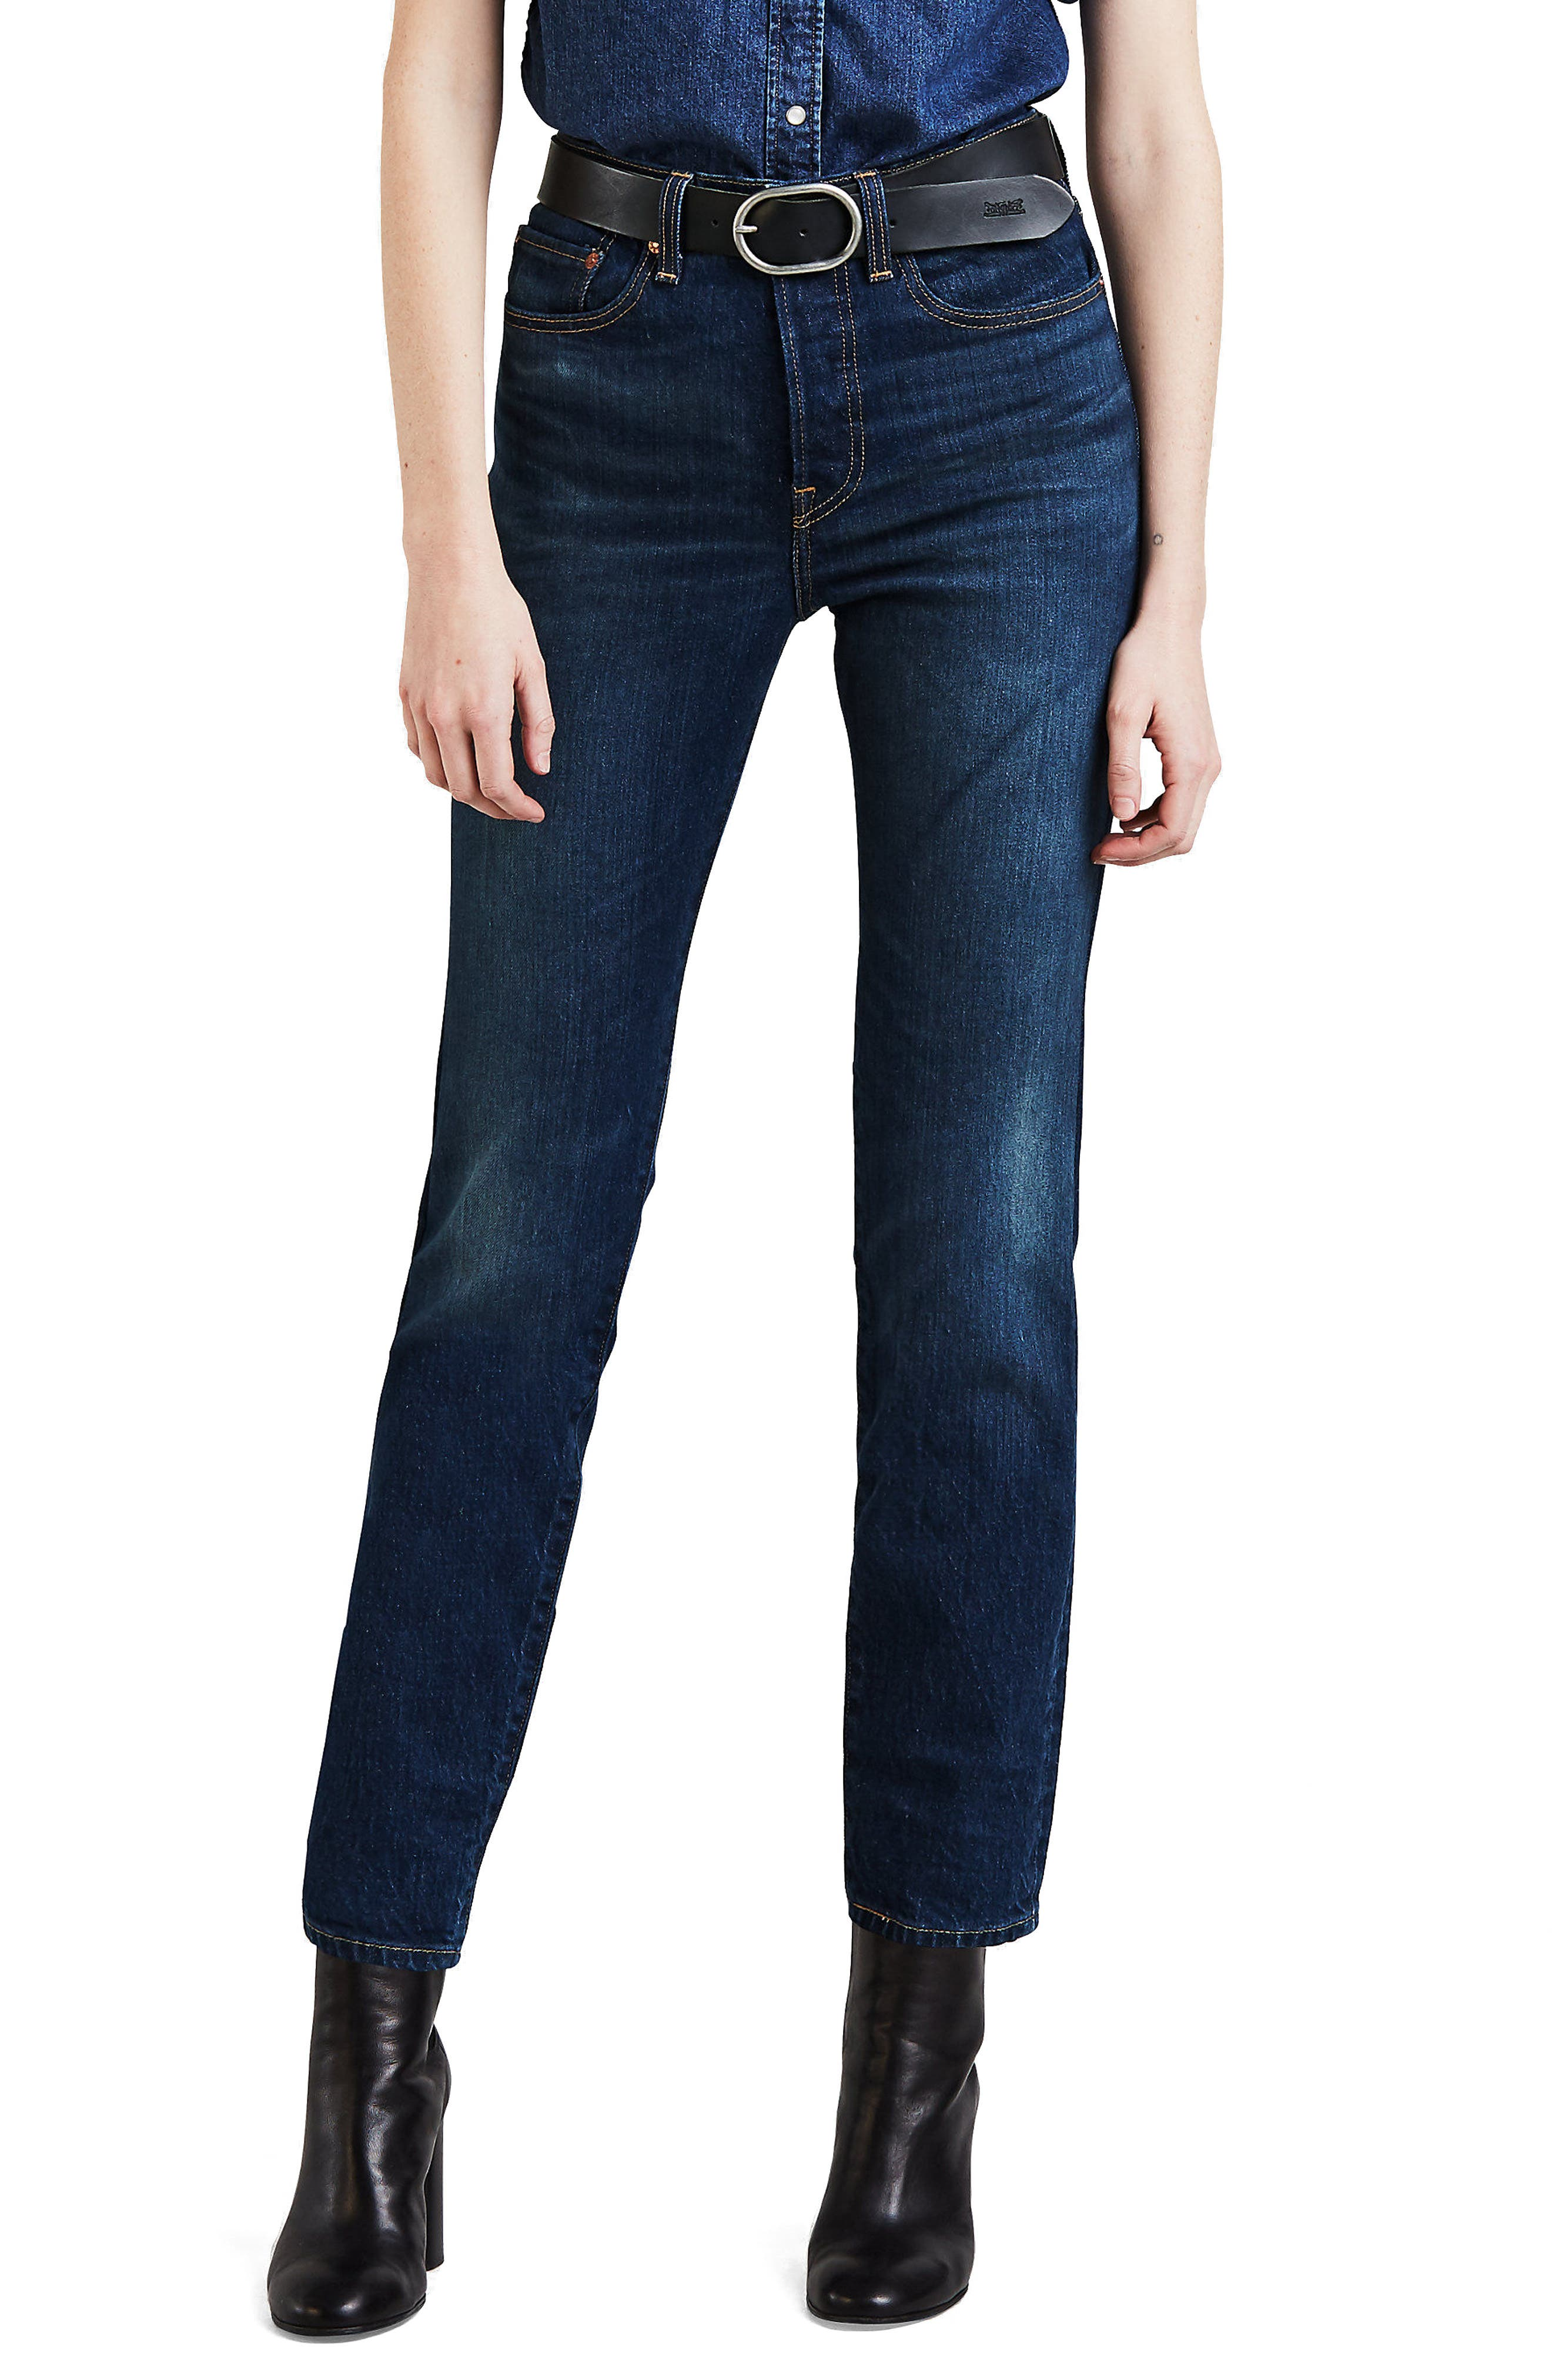 Wedgie Icon Fit High-Rise Skinny Jeans in Blue